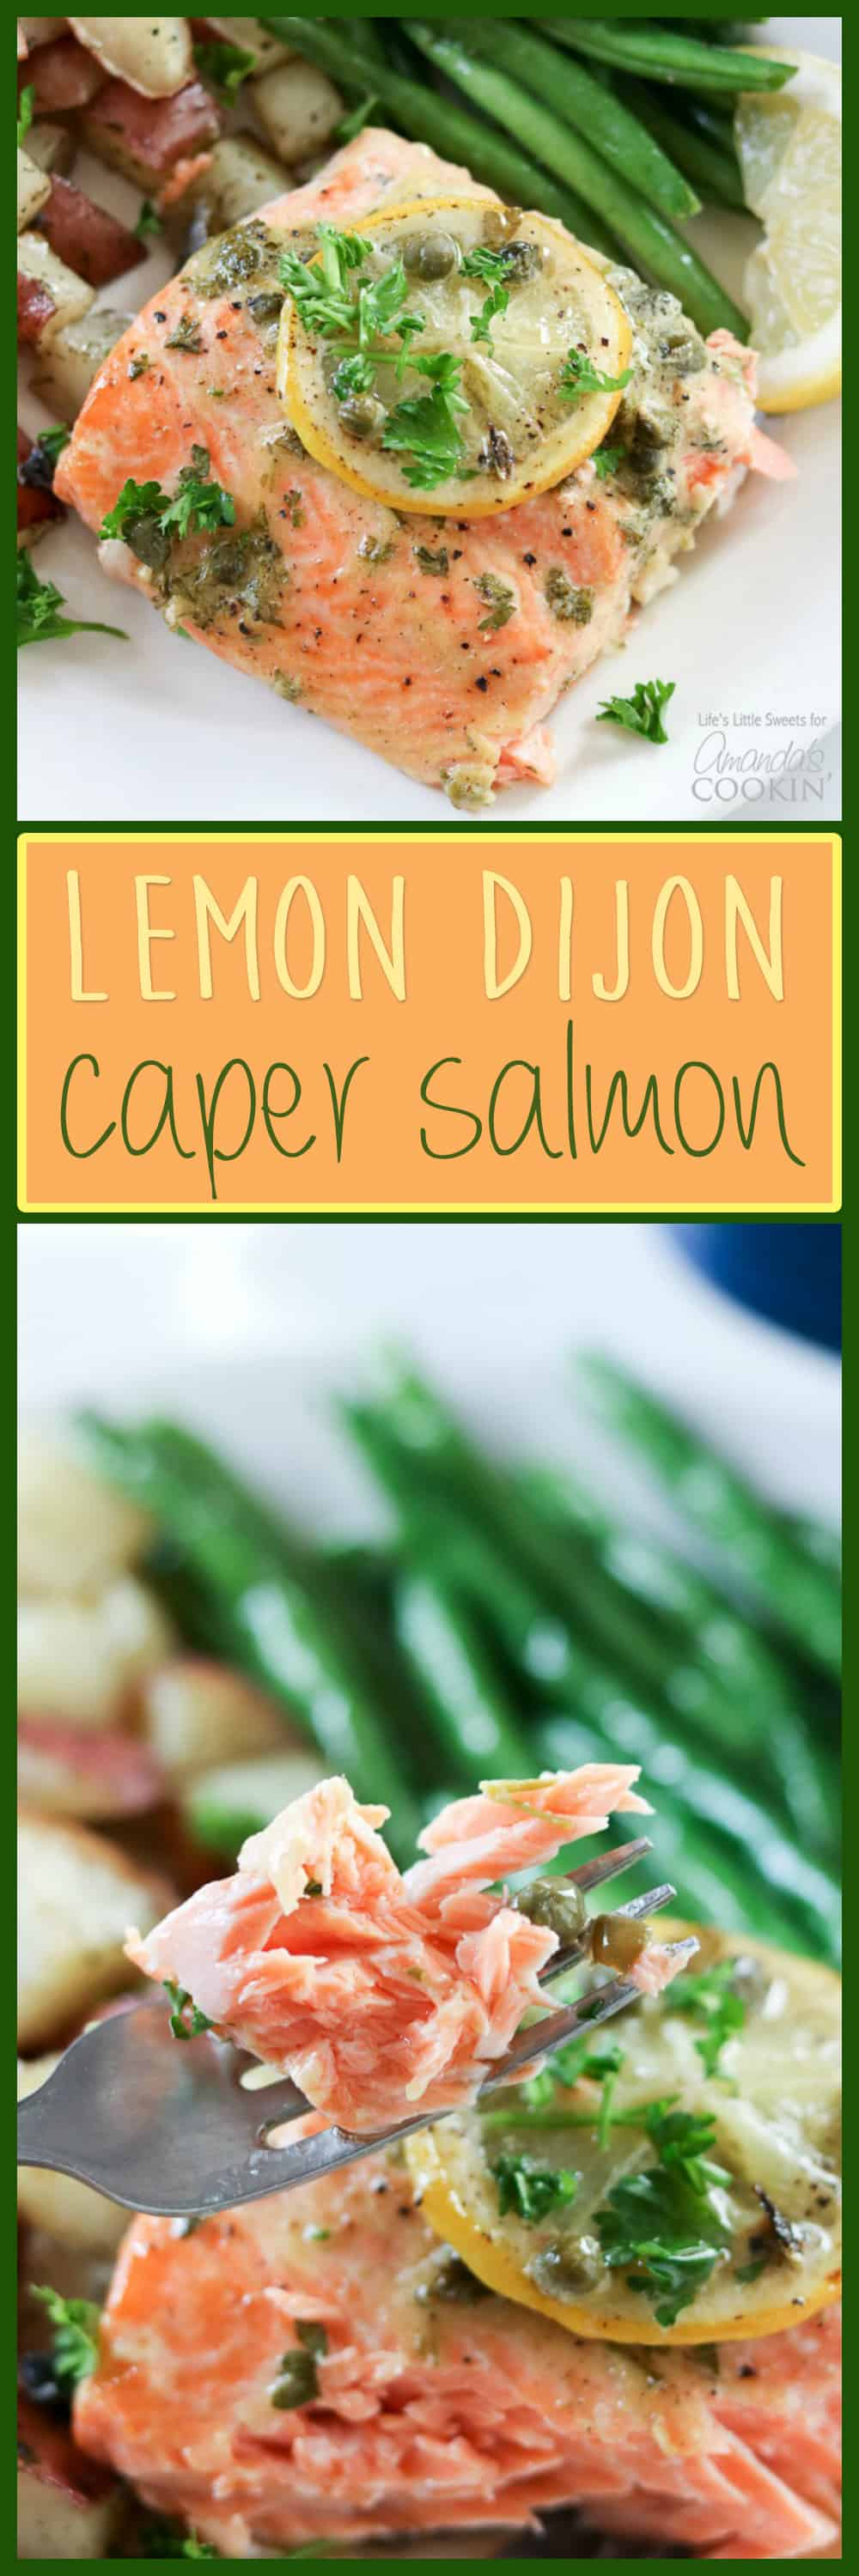 This Dijon Lemon Caper Salmon will have Salmon lovers rejoicing with Dijon, lemon and caper flavor infused into melt-in-your-mouth fillets of salmon.